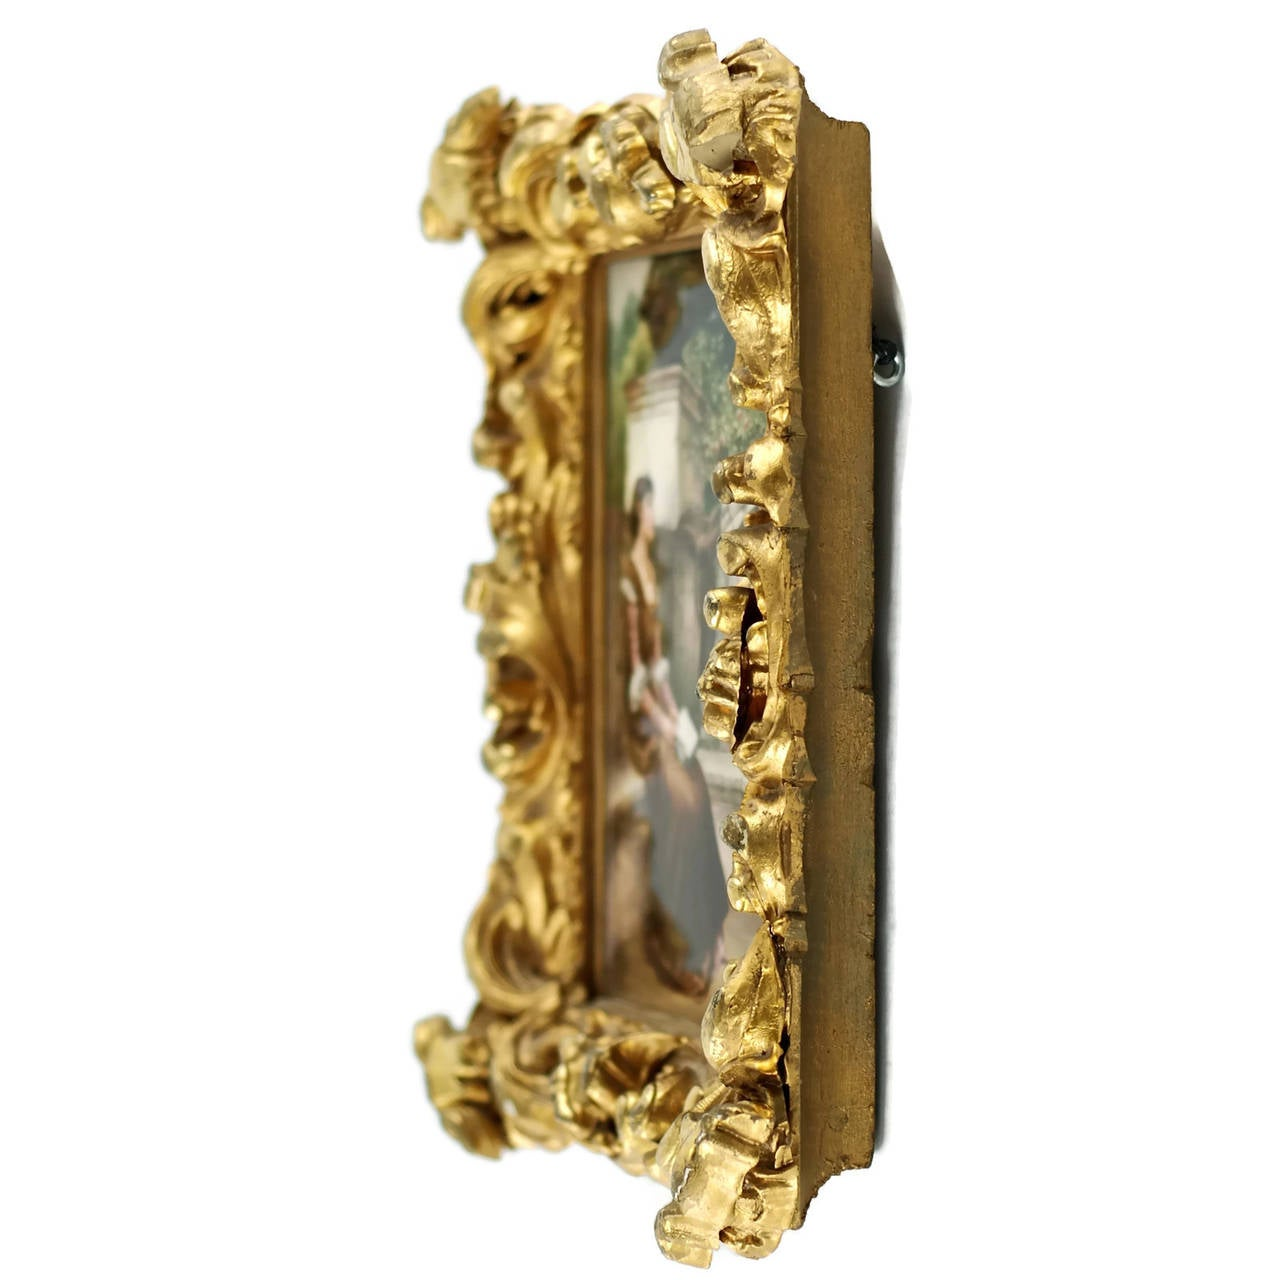 19th Century KPM Plaque Signed by Wagner in Giltwood Frame, 'Erinnerungen' For Sale 1